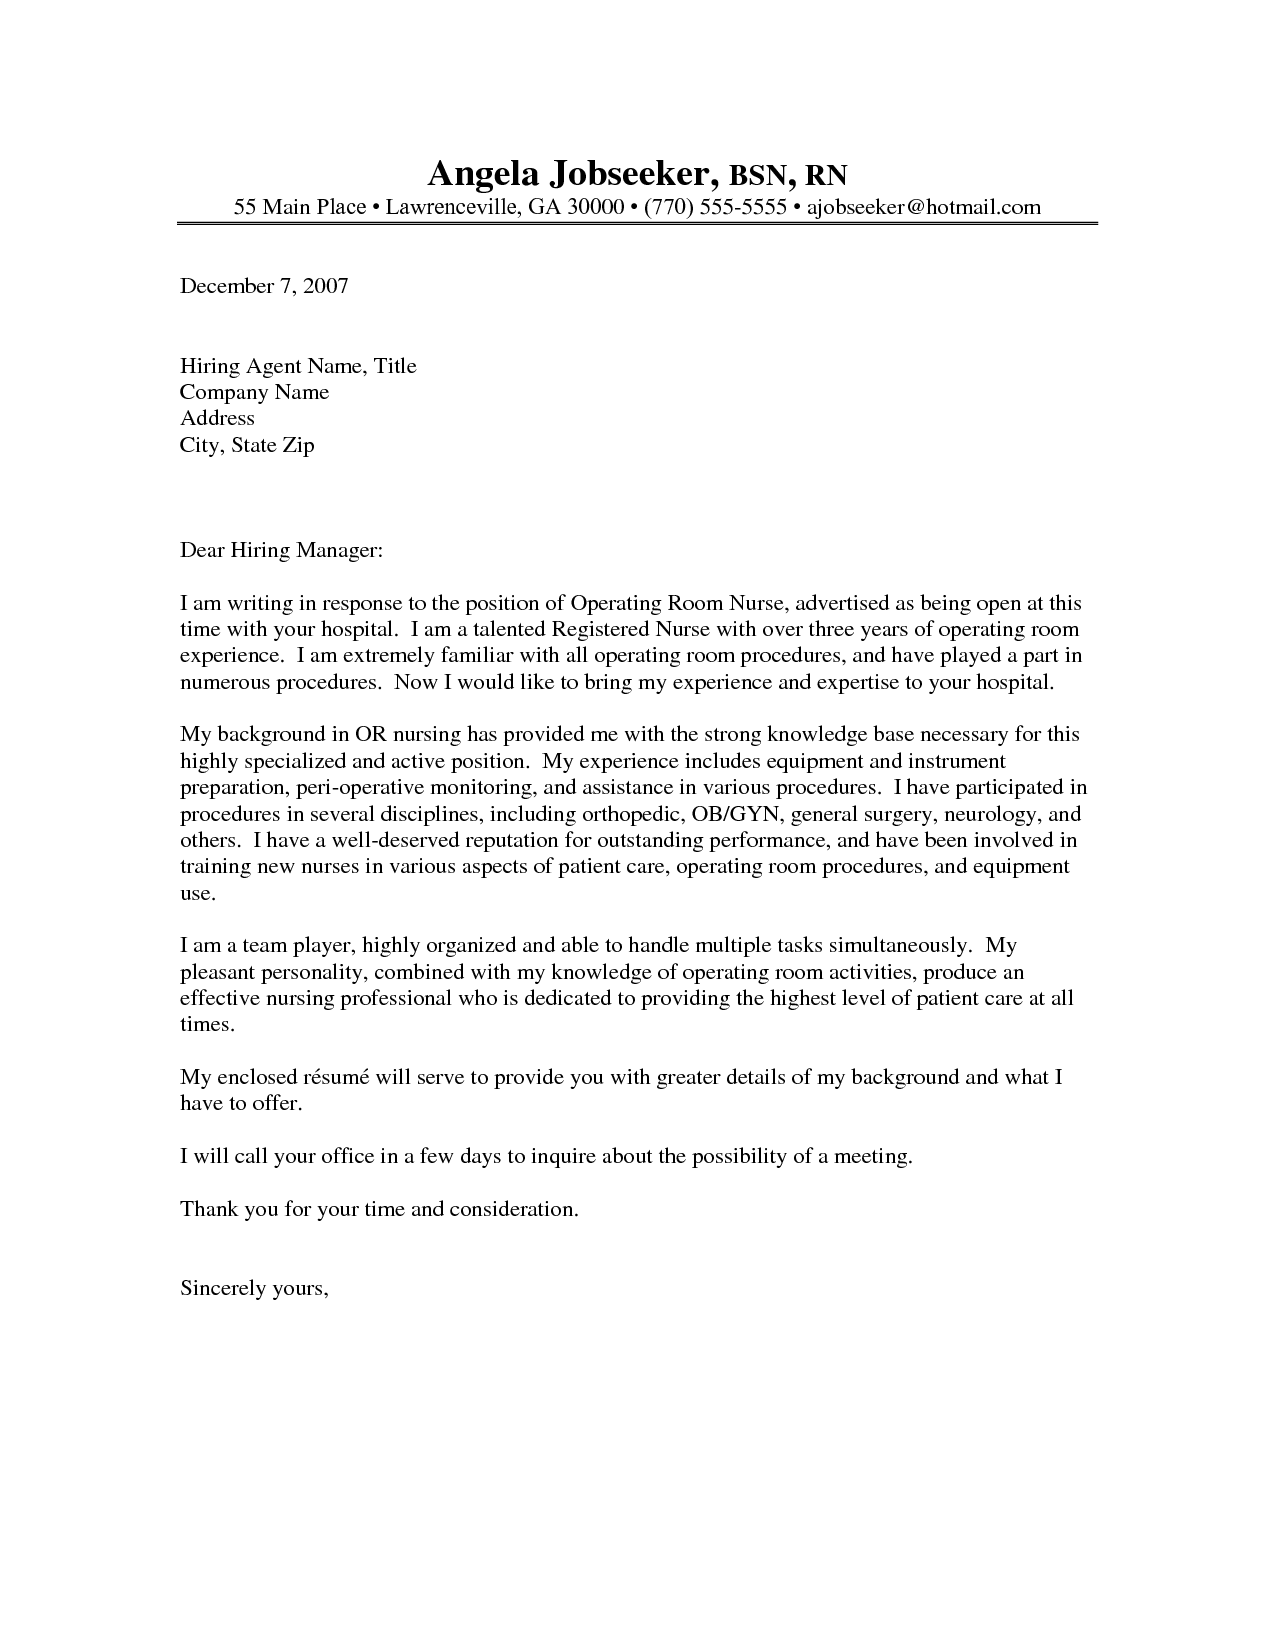 title attorney cover letter sample